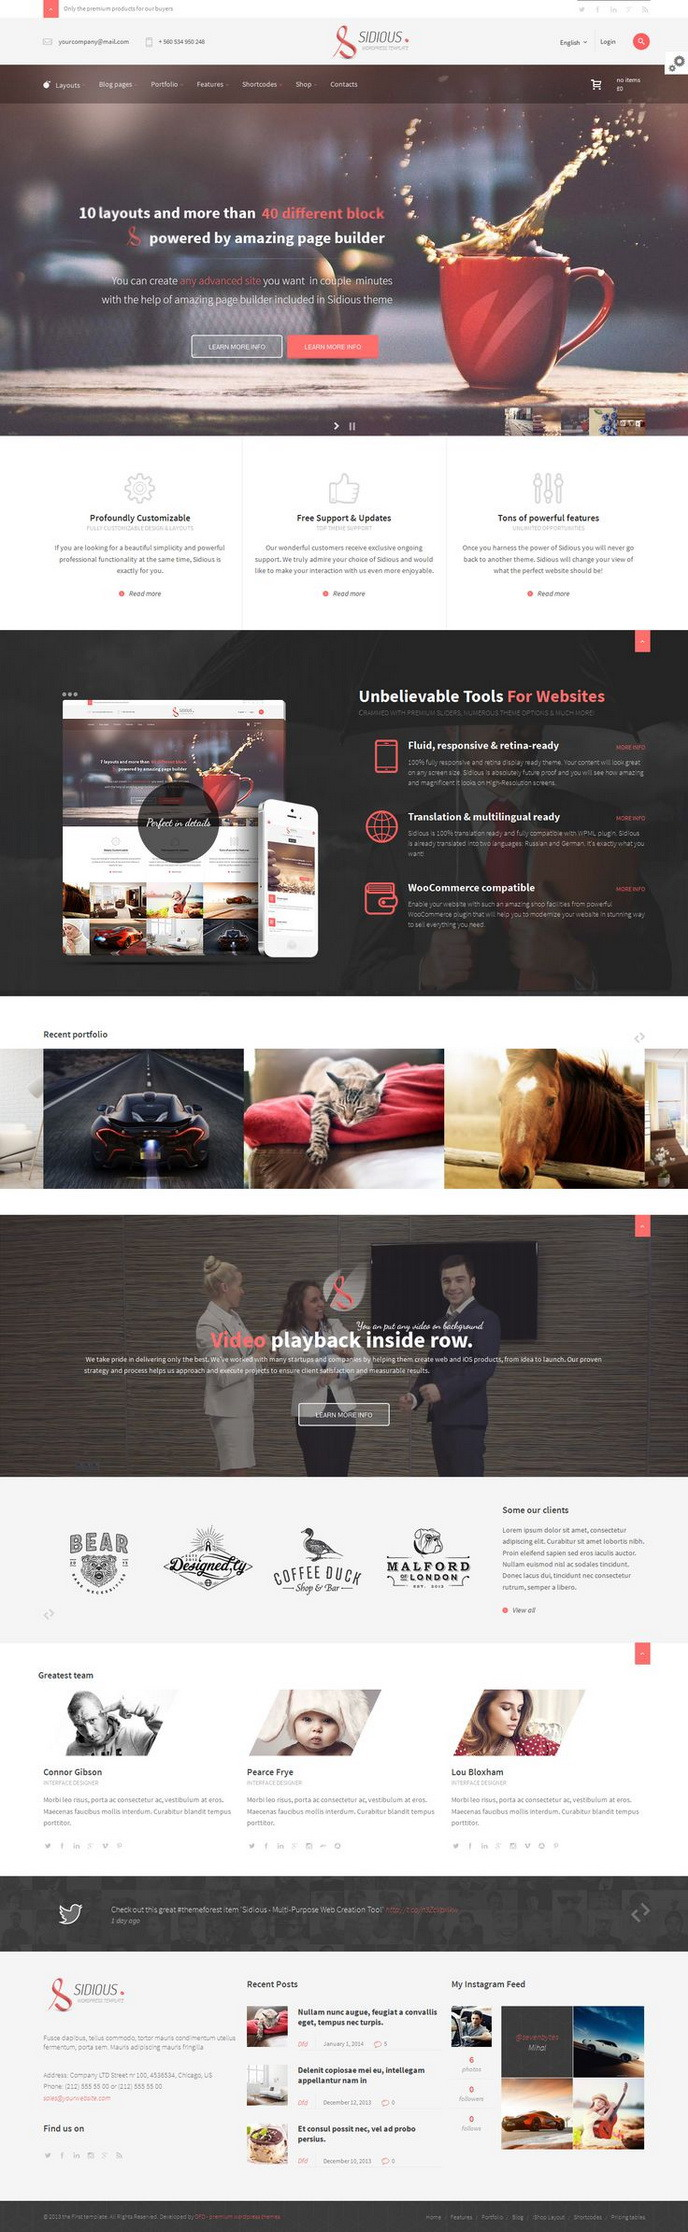 Web design inspiration (5)